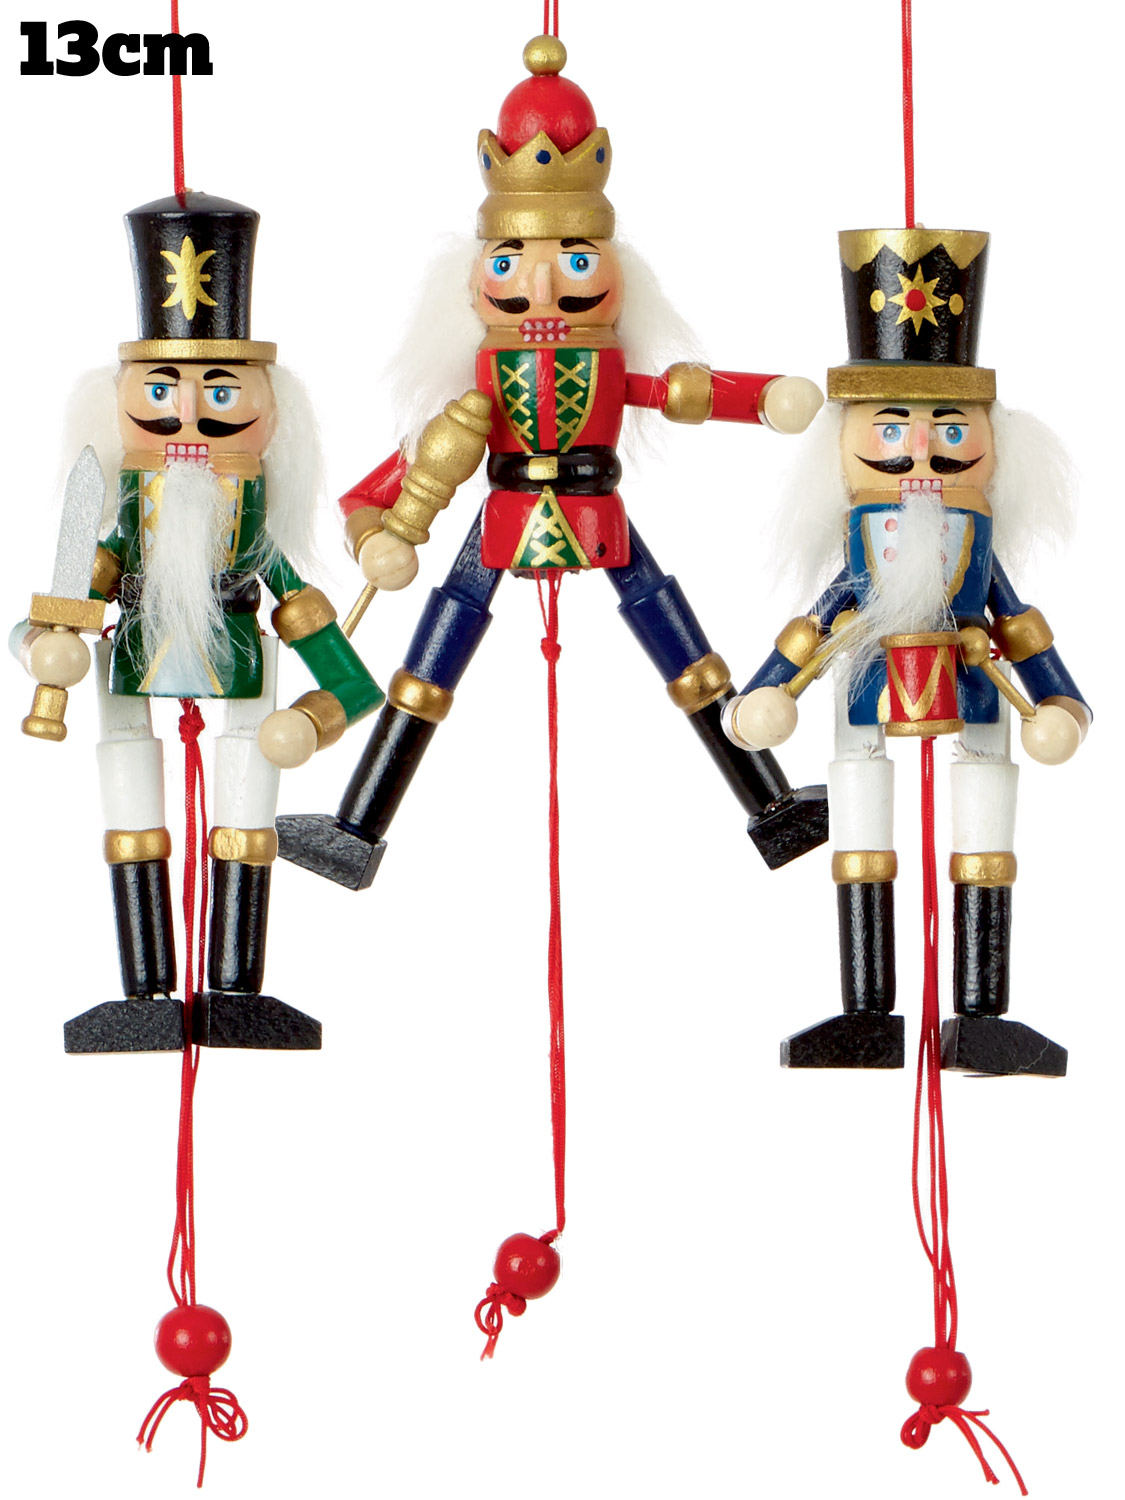 nutcracker tree decoration christmas wooden hanging pullstring xmas ornament 13c ebay. Black Bedroom Furniture Sets. Home Design Ideas